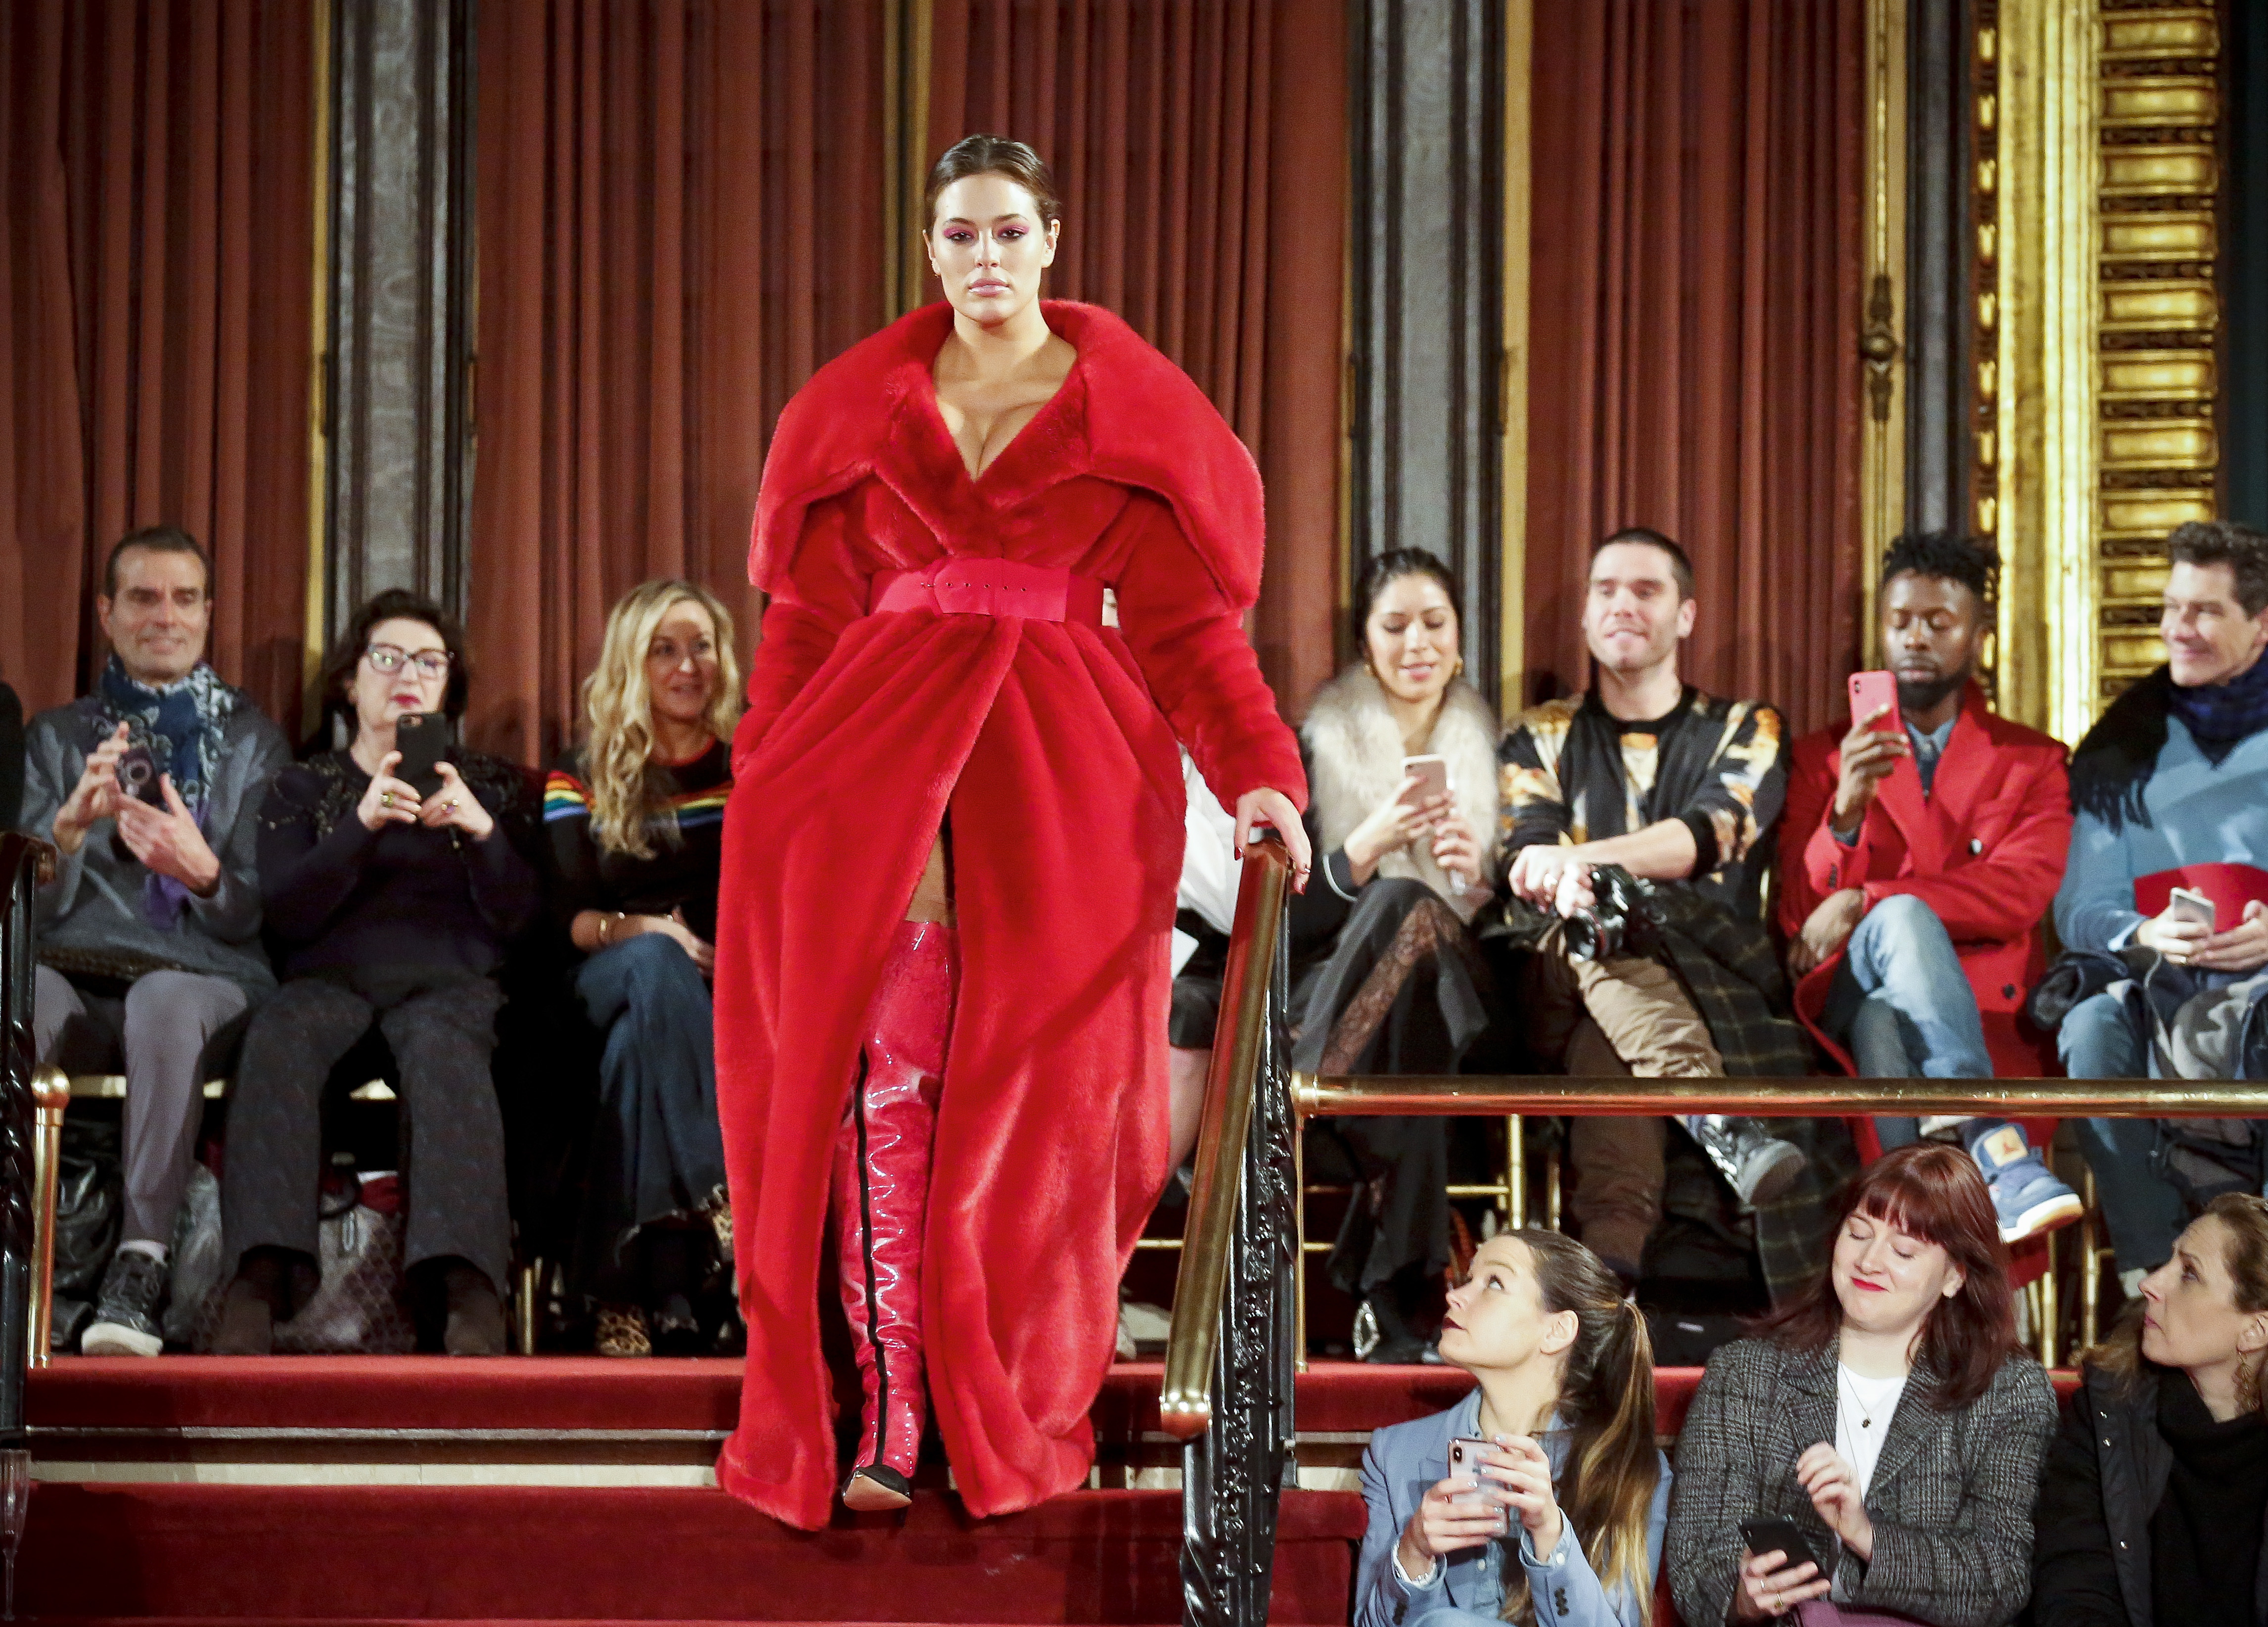 Ashley Graham in Christian Siriano's show